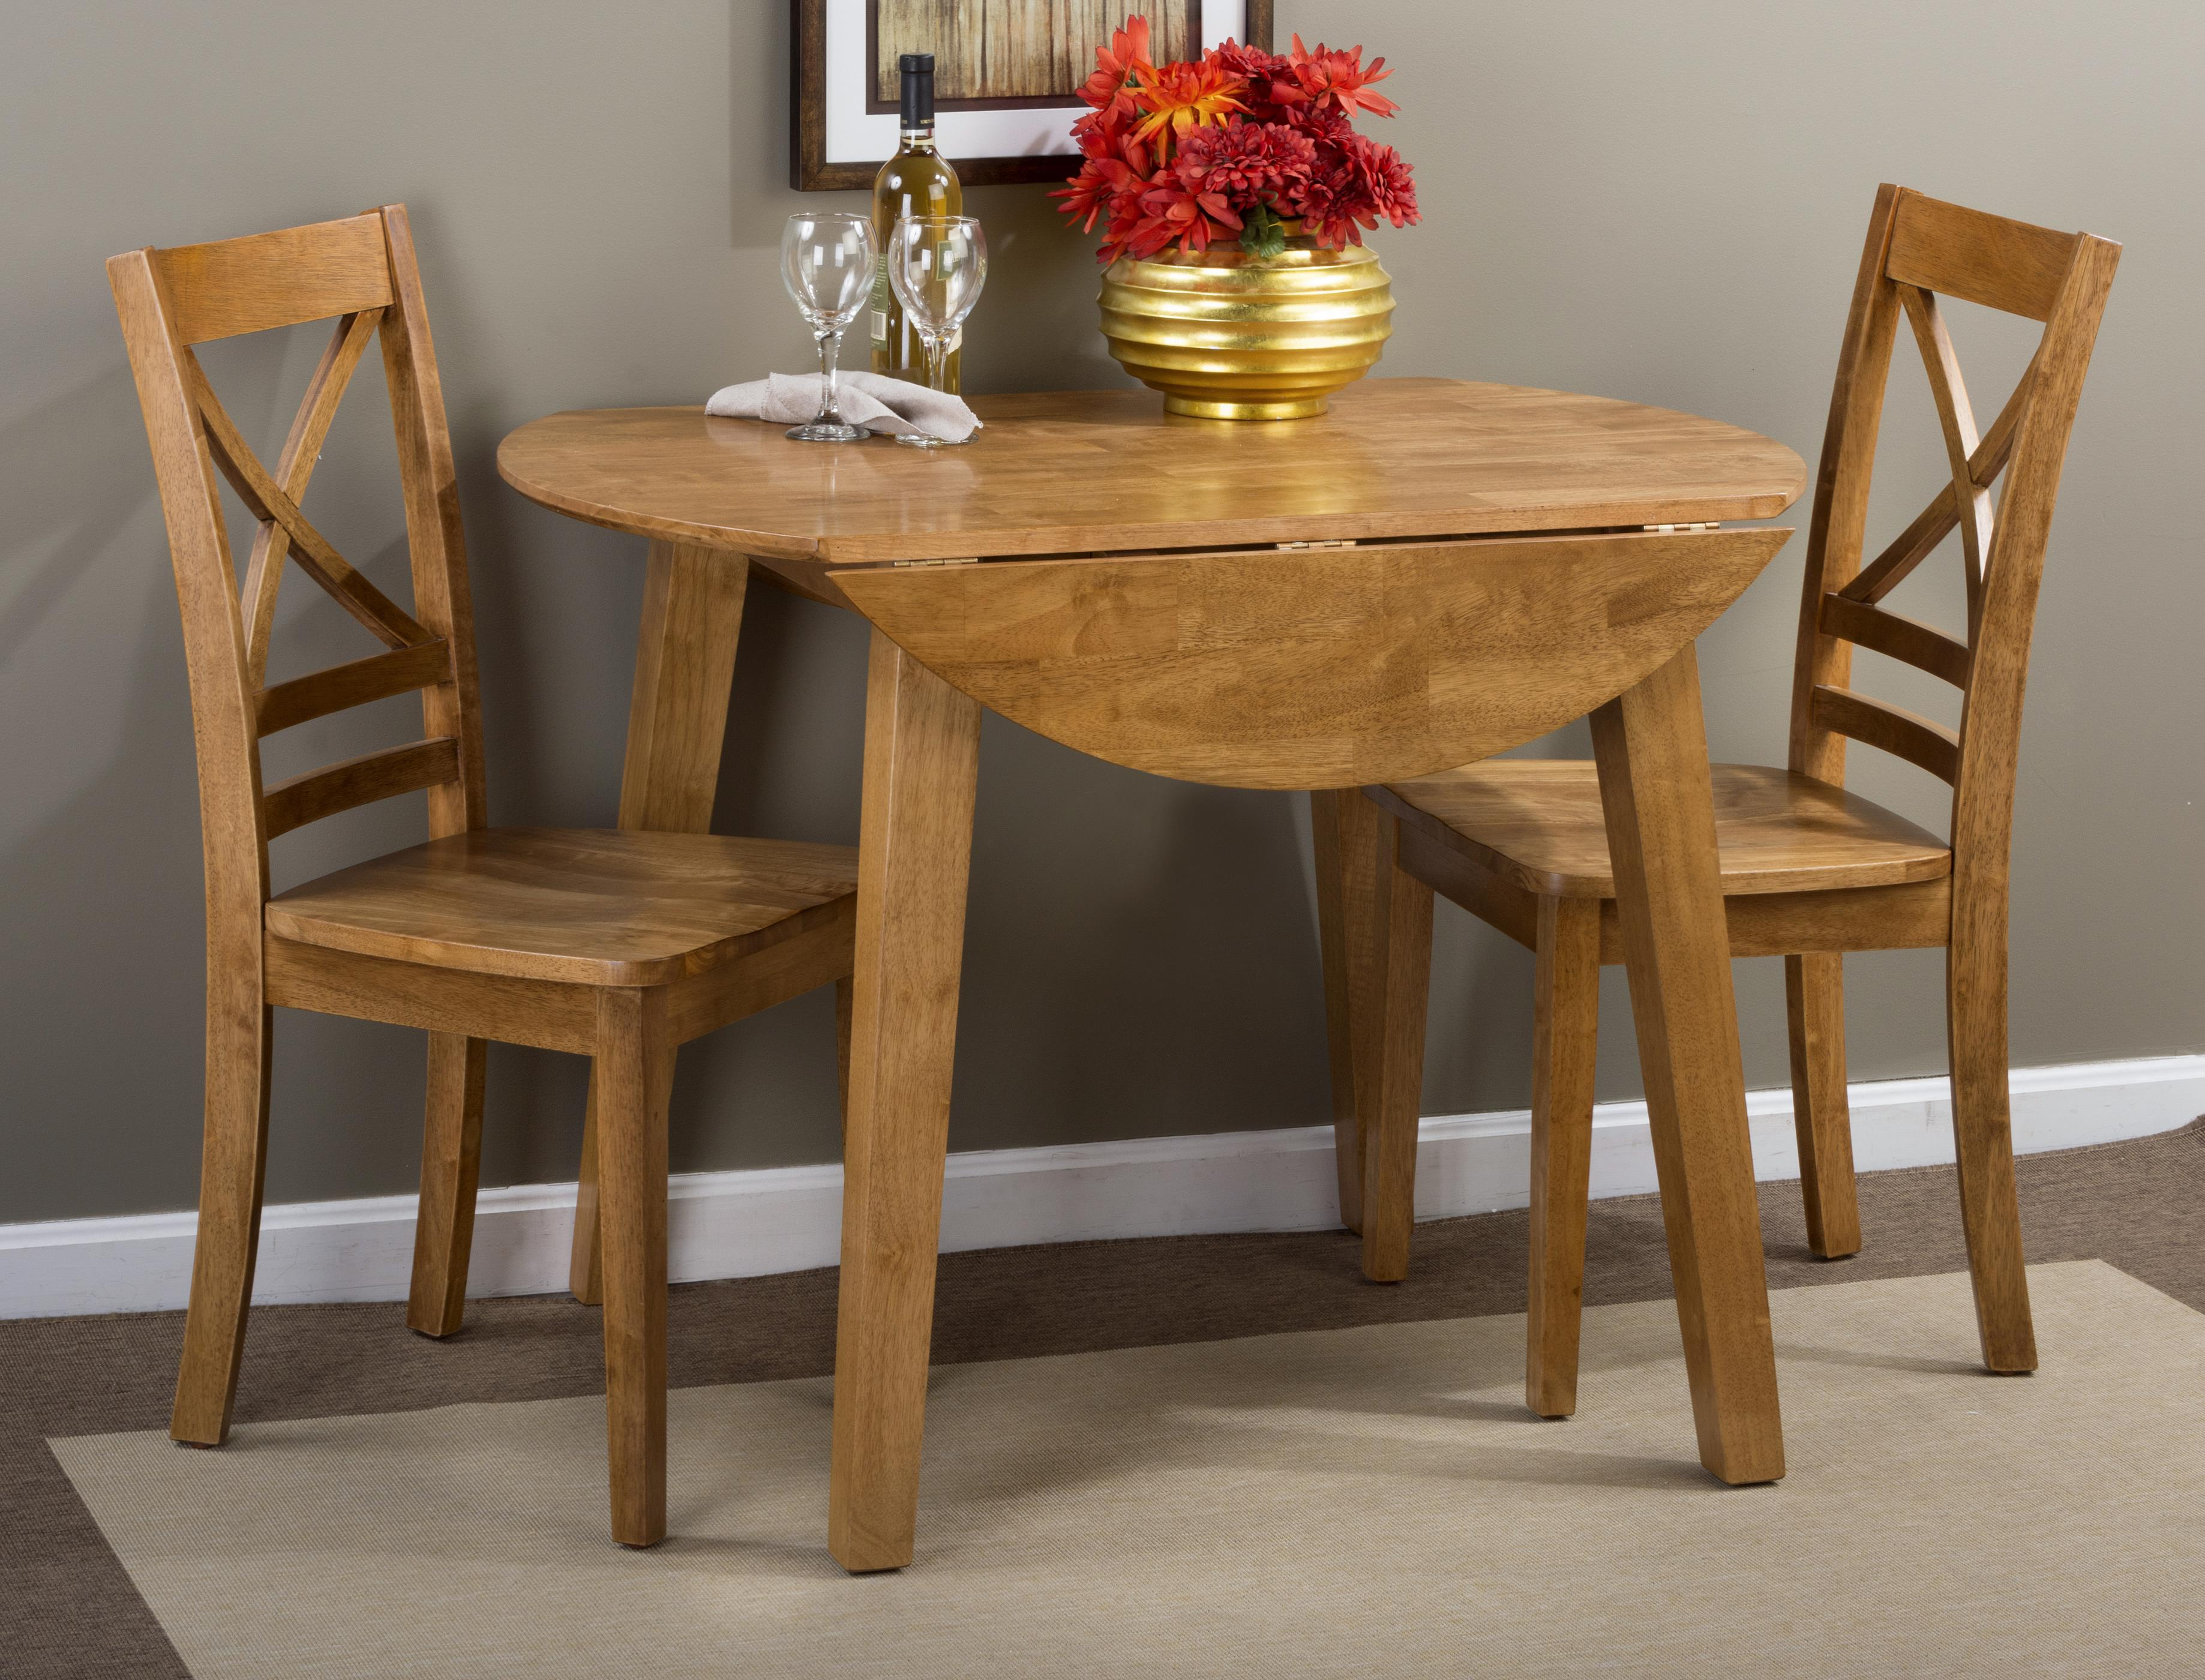 Simplicity Round Table and 2 Chair Set by Jofran at Jofran